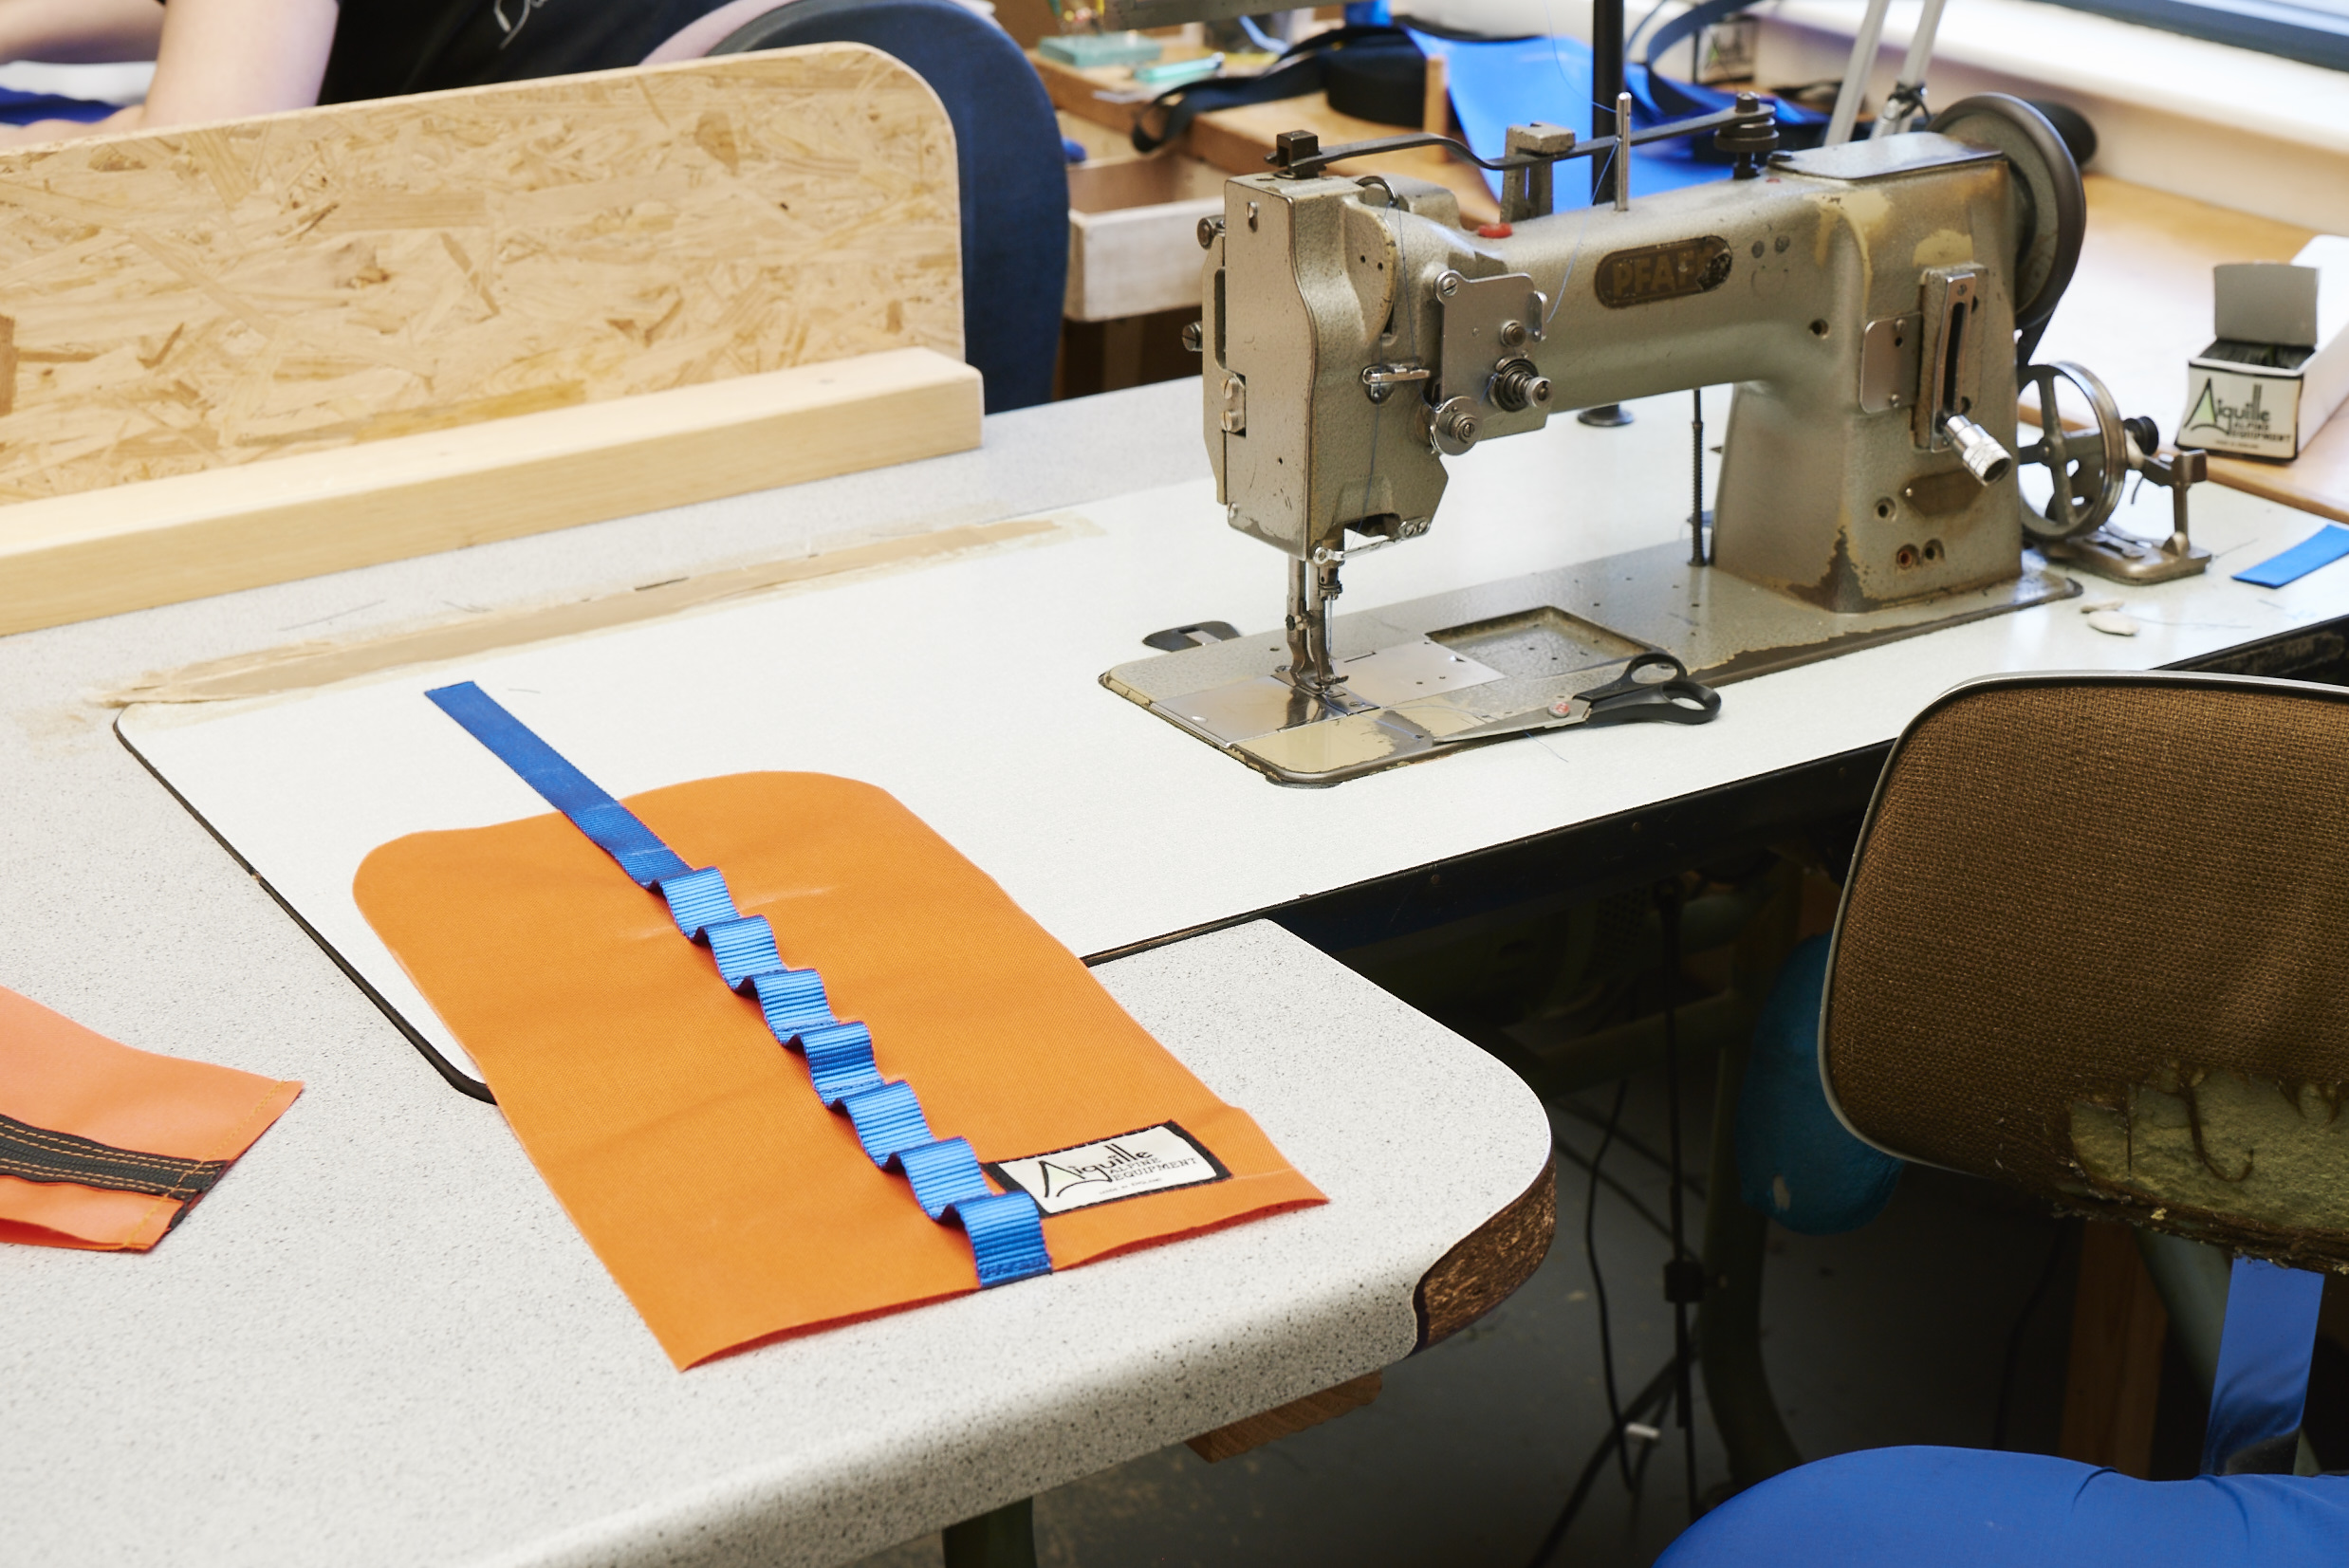 Aiguille Alpine bags are made the bombproof way, on trusty sewing machines with experienced hands.